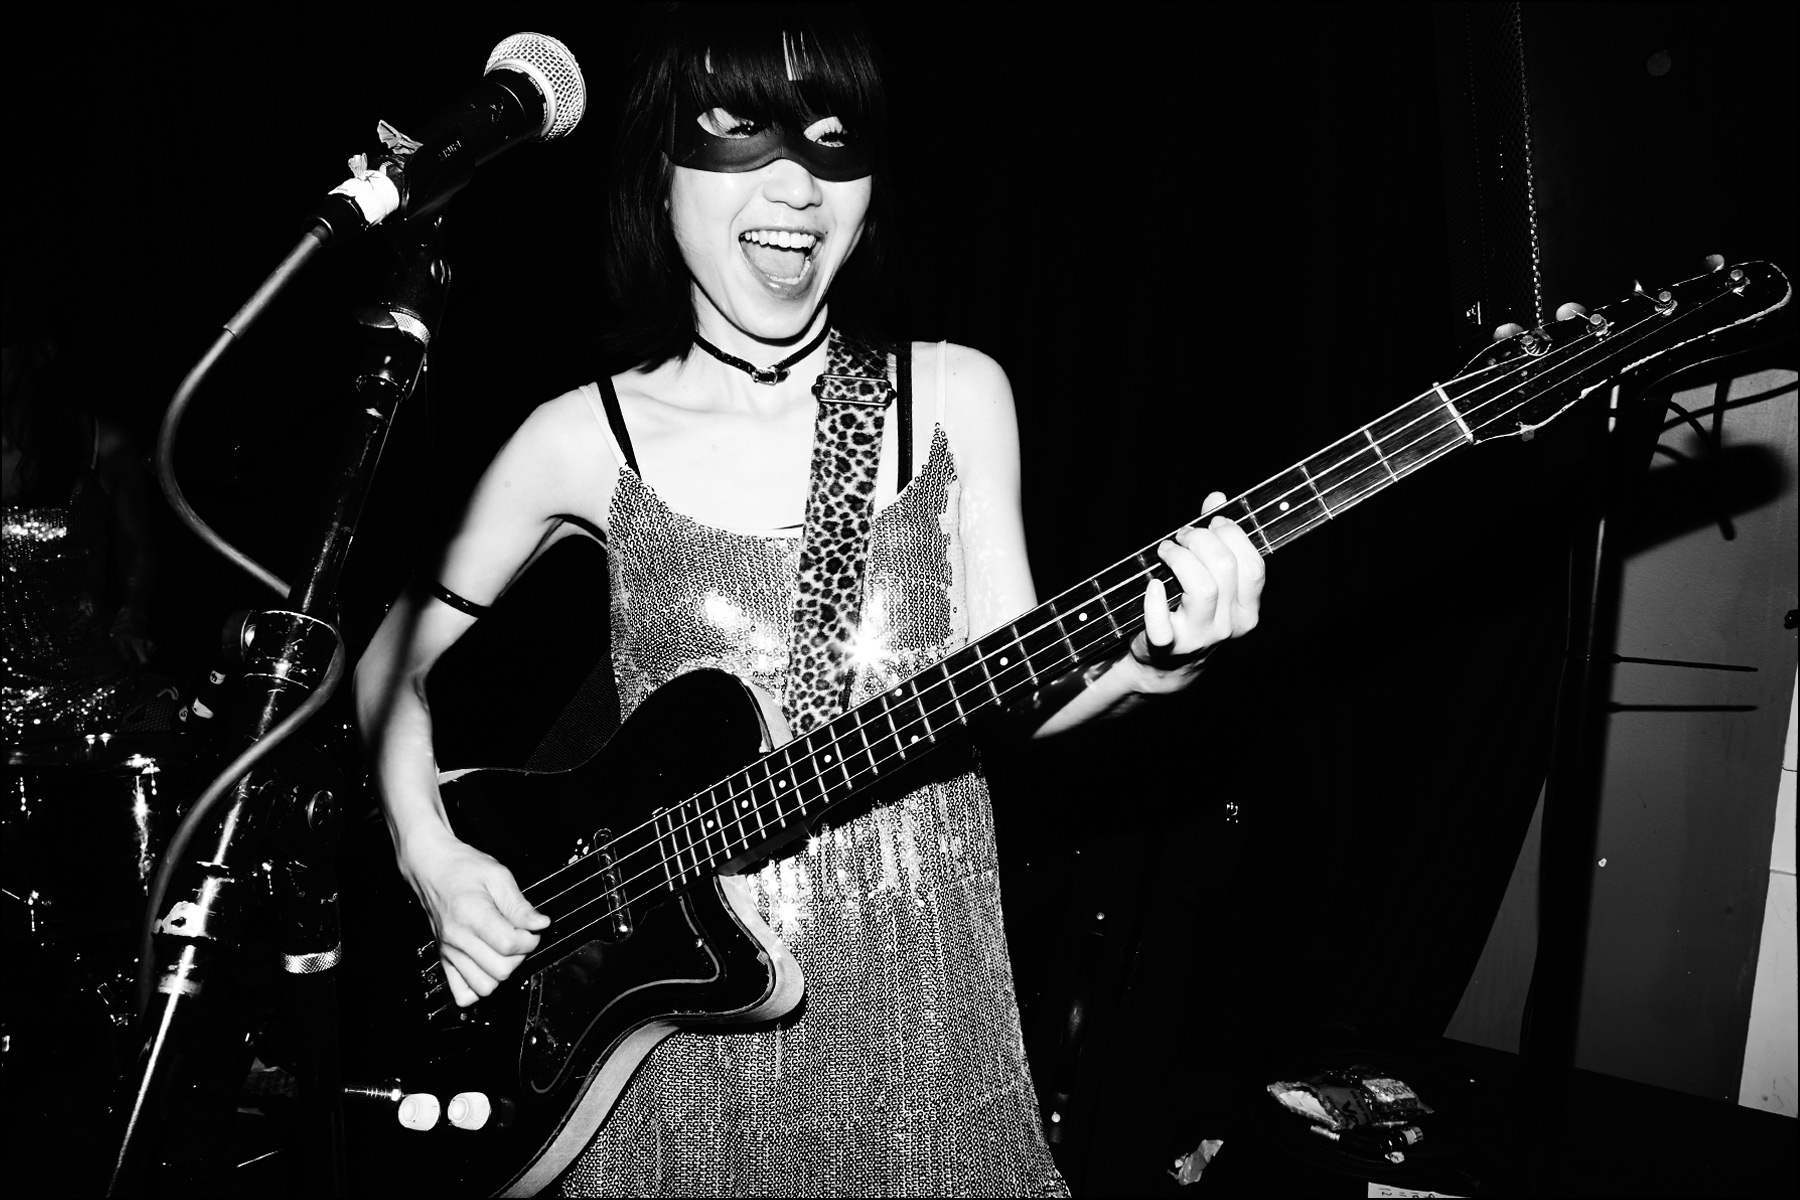 Rie, from Wild Records band The Stompin Riffraffs, photographed onstage at Berlin. Photography by Alexander Thompson for Ponyboy magazine NY.